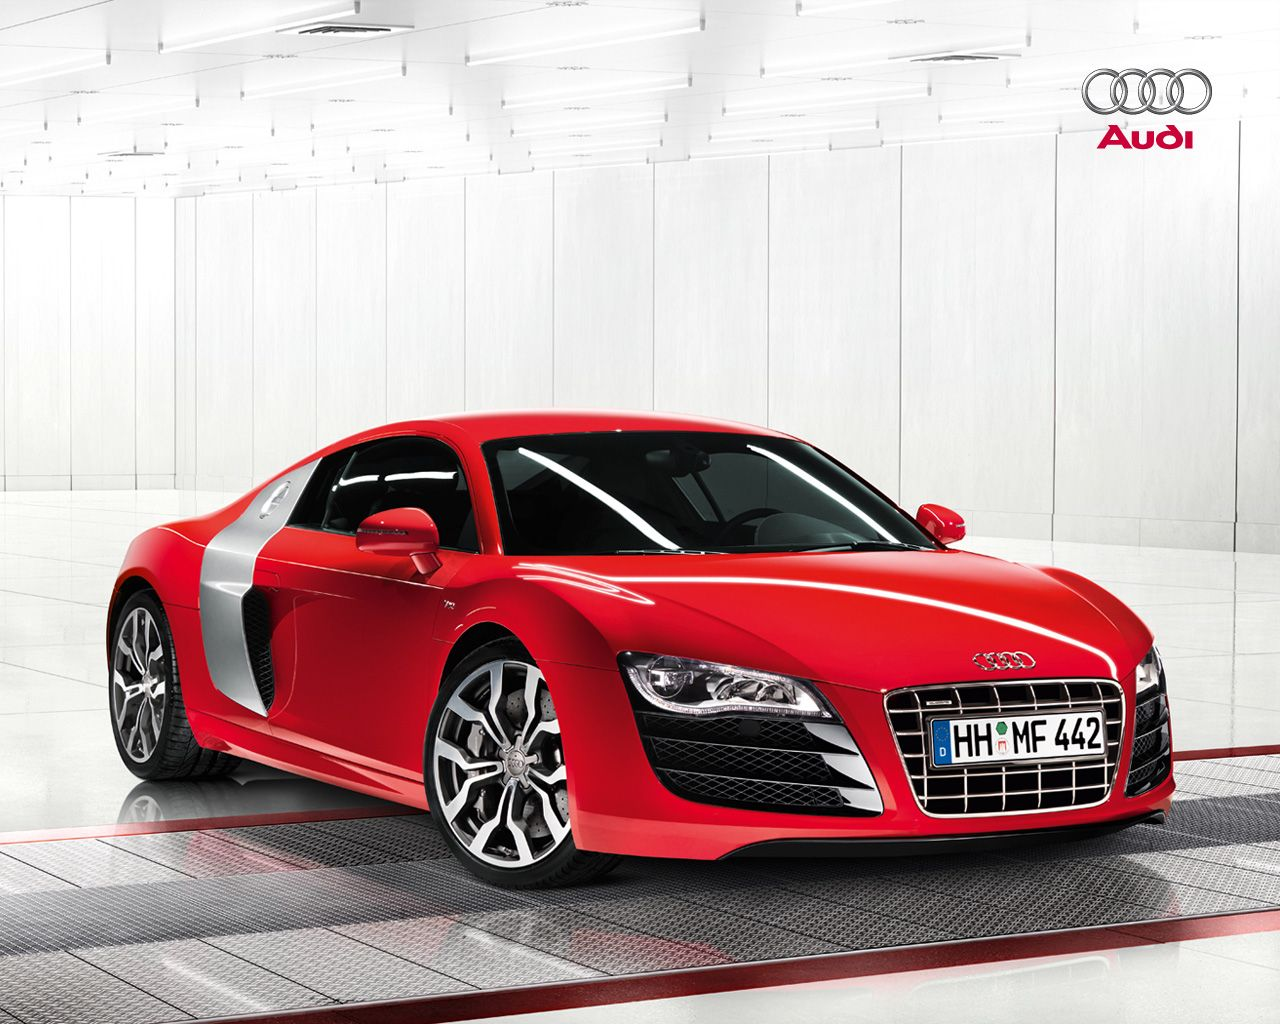 Best 25 audi r8 review ideas on pinterest dream cars audi a4 2015 and audi r8 2016